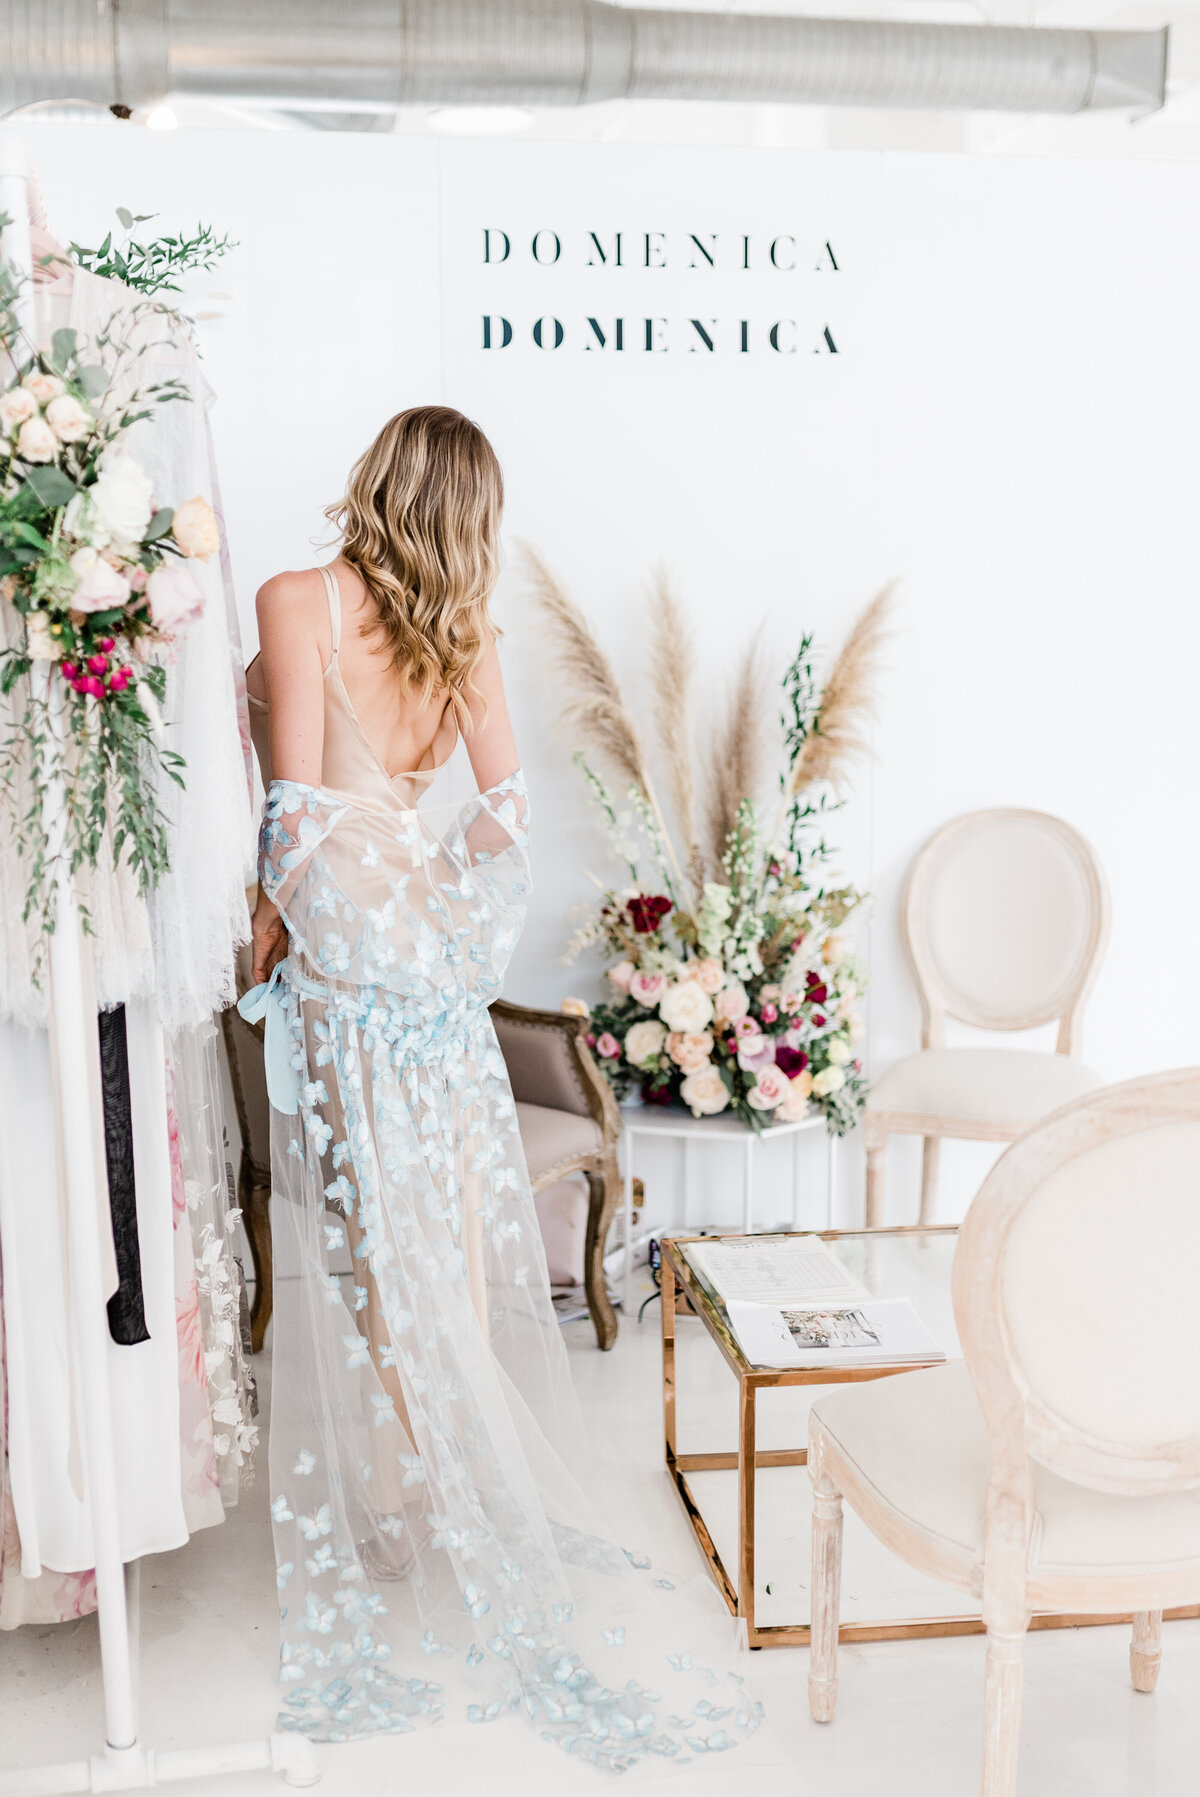 DOMENICADOMENICANYBFW2019-105